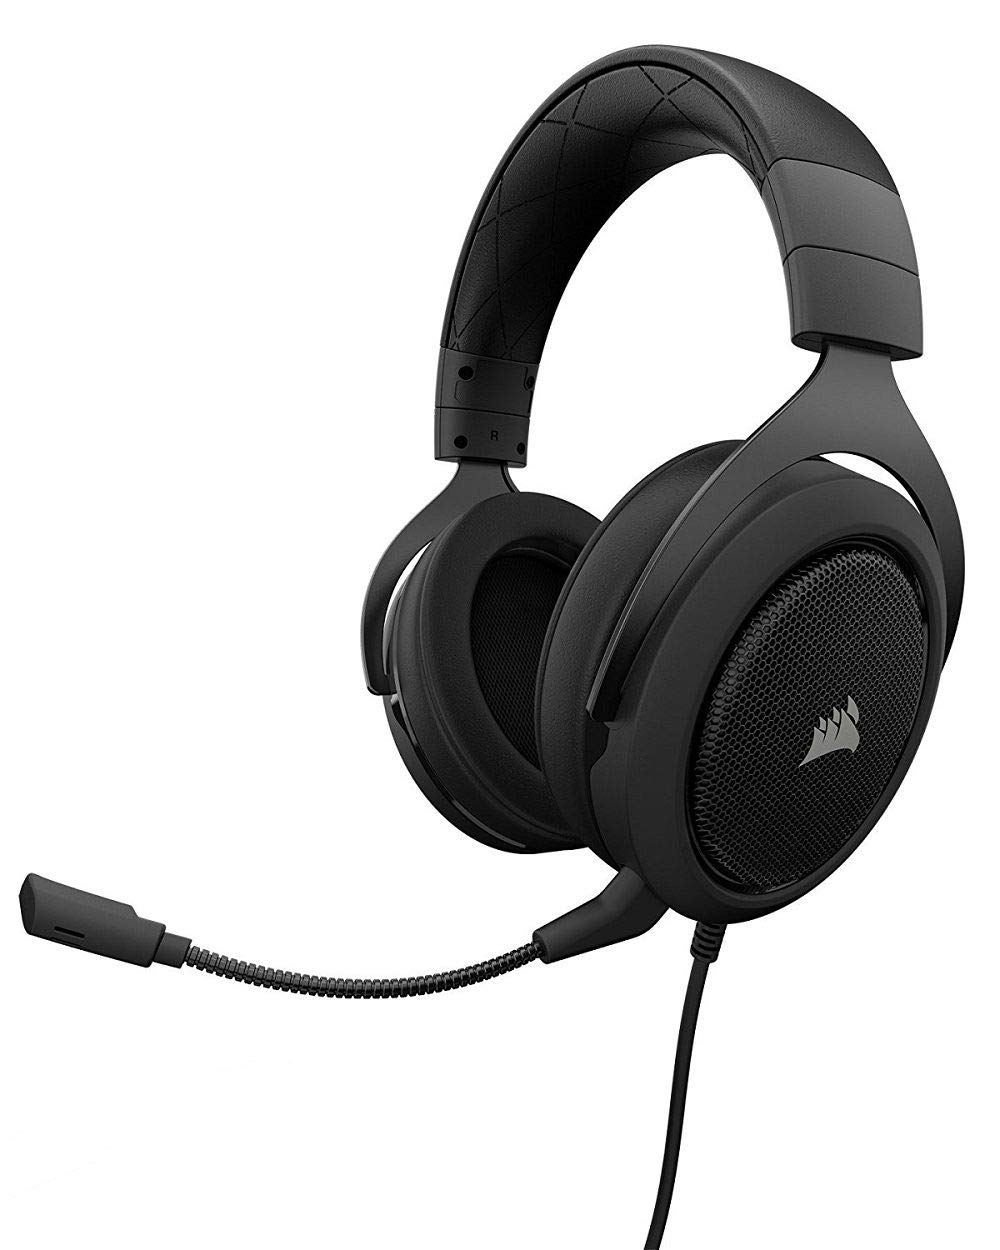 CORSAIR HS50 - Stereo Gaming Headset - Discord Certified Headphones - Works with PC, Mac, Xbox One, PS4, Nintendo Switch, iOS and Android - Carbon by Corsair